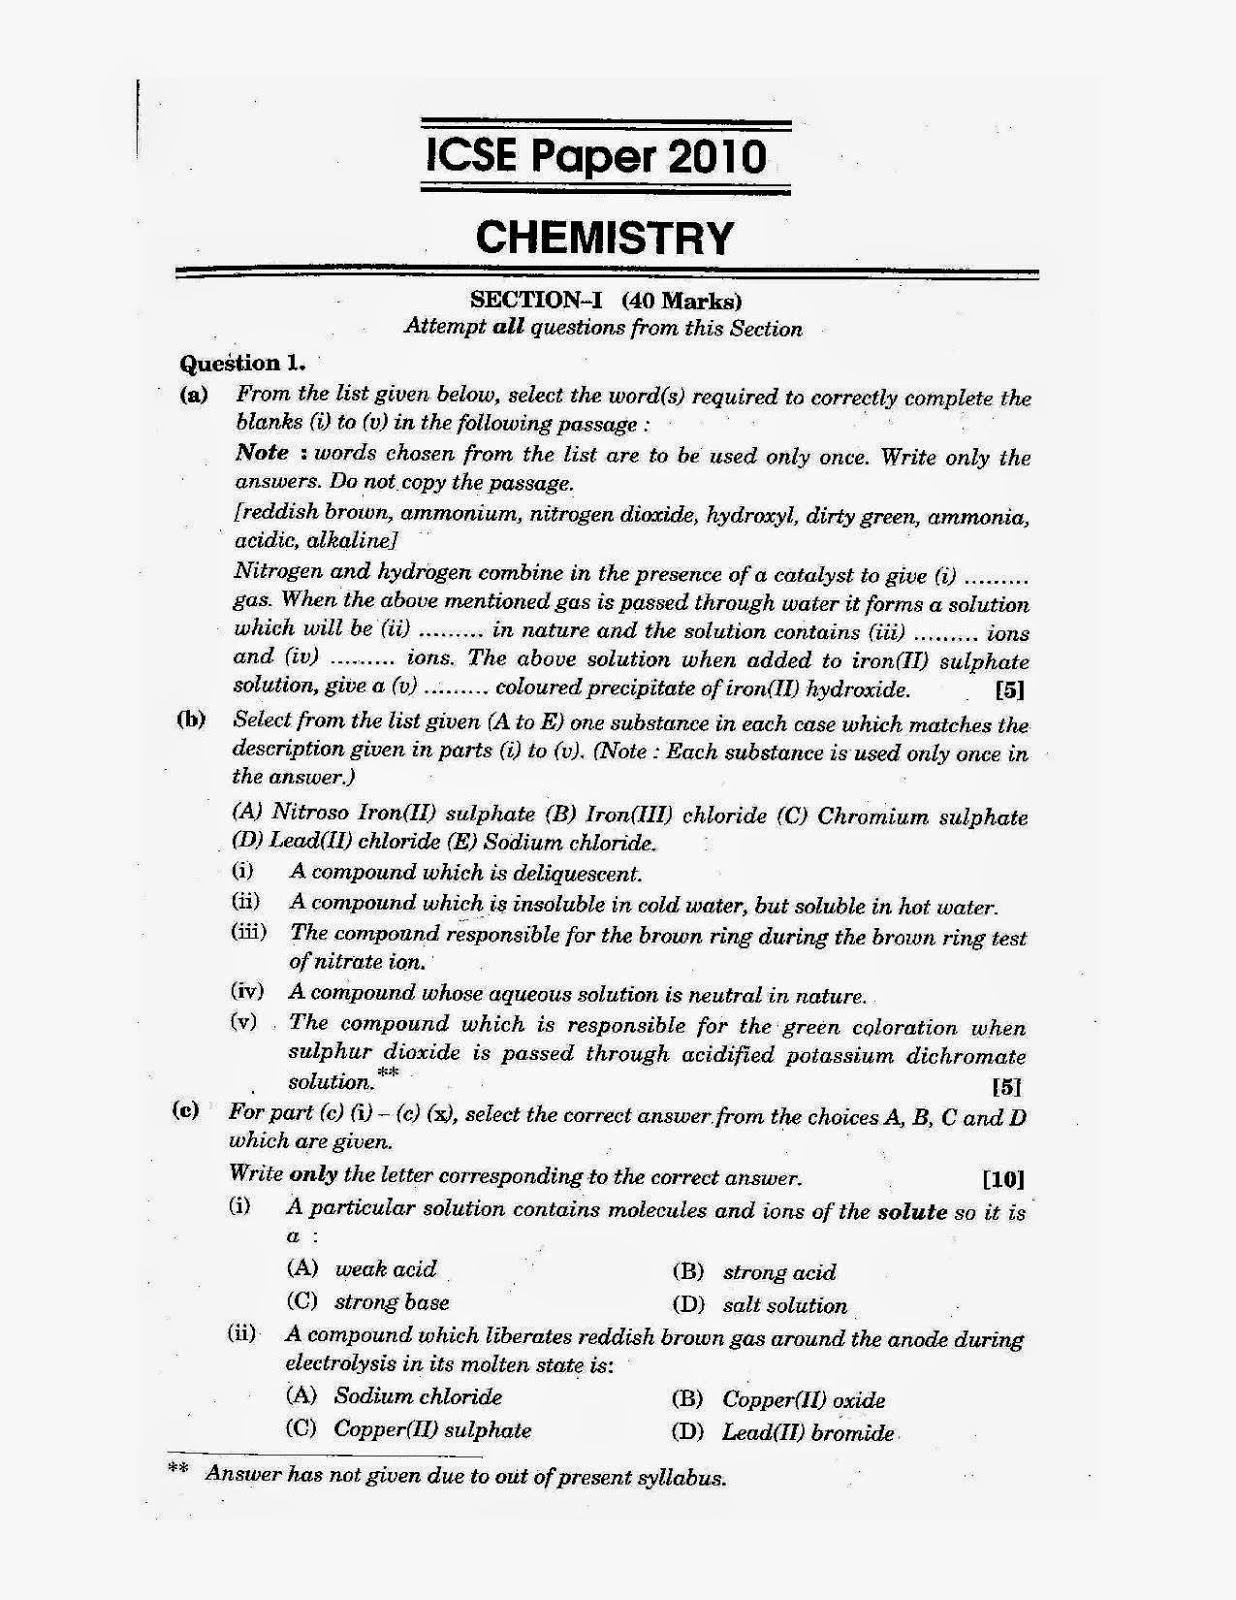 Physical chemistry essay questions